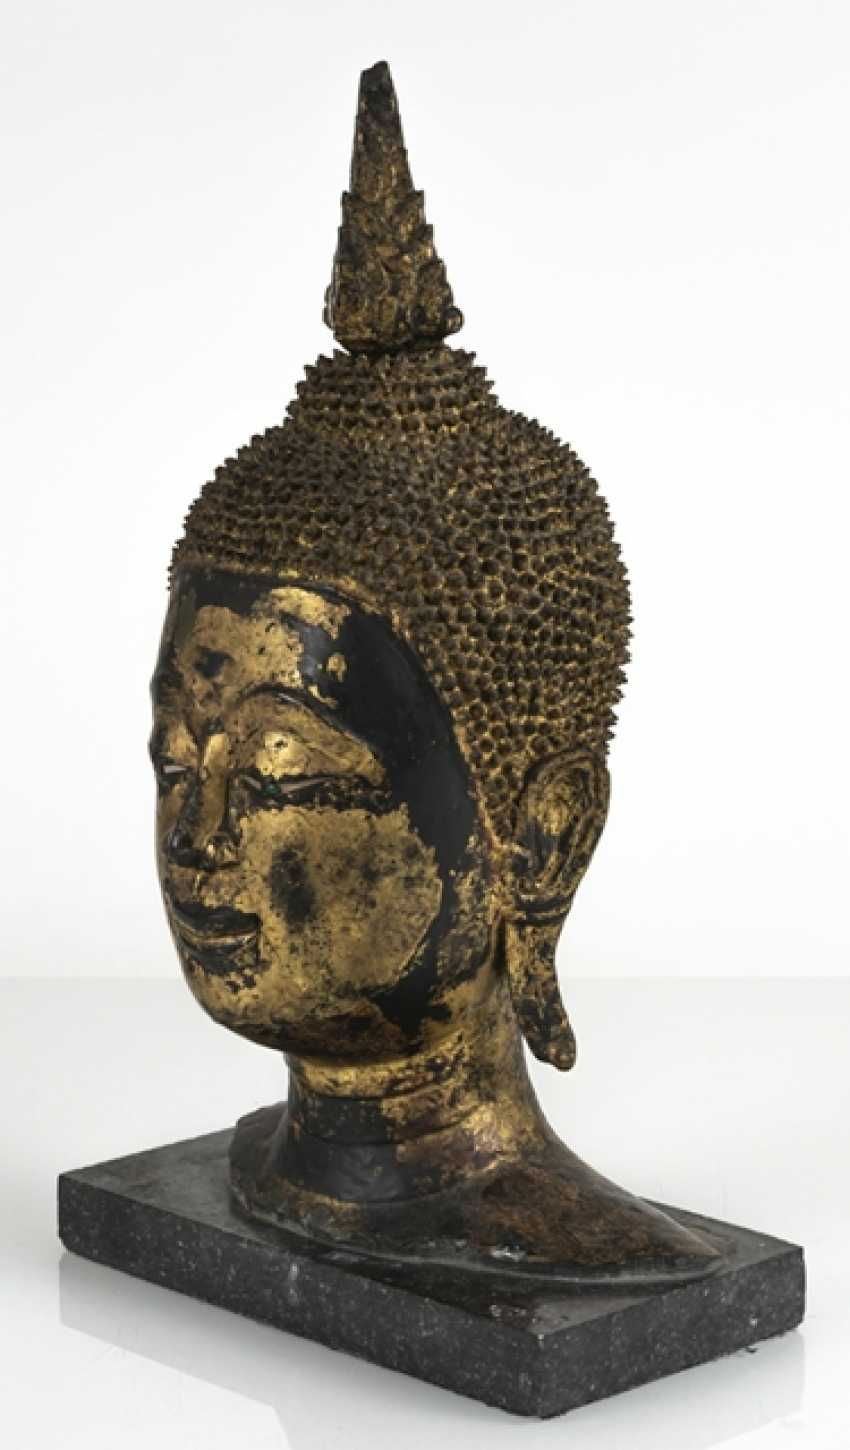 Head of the Buddha Sakyamuni made of Bronze with gold-toned and black lacquer version - photo 4